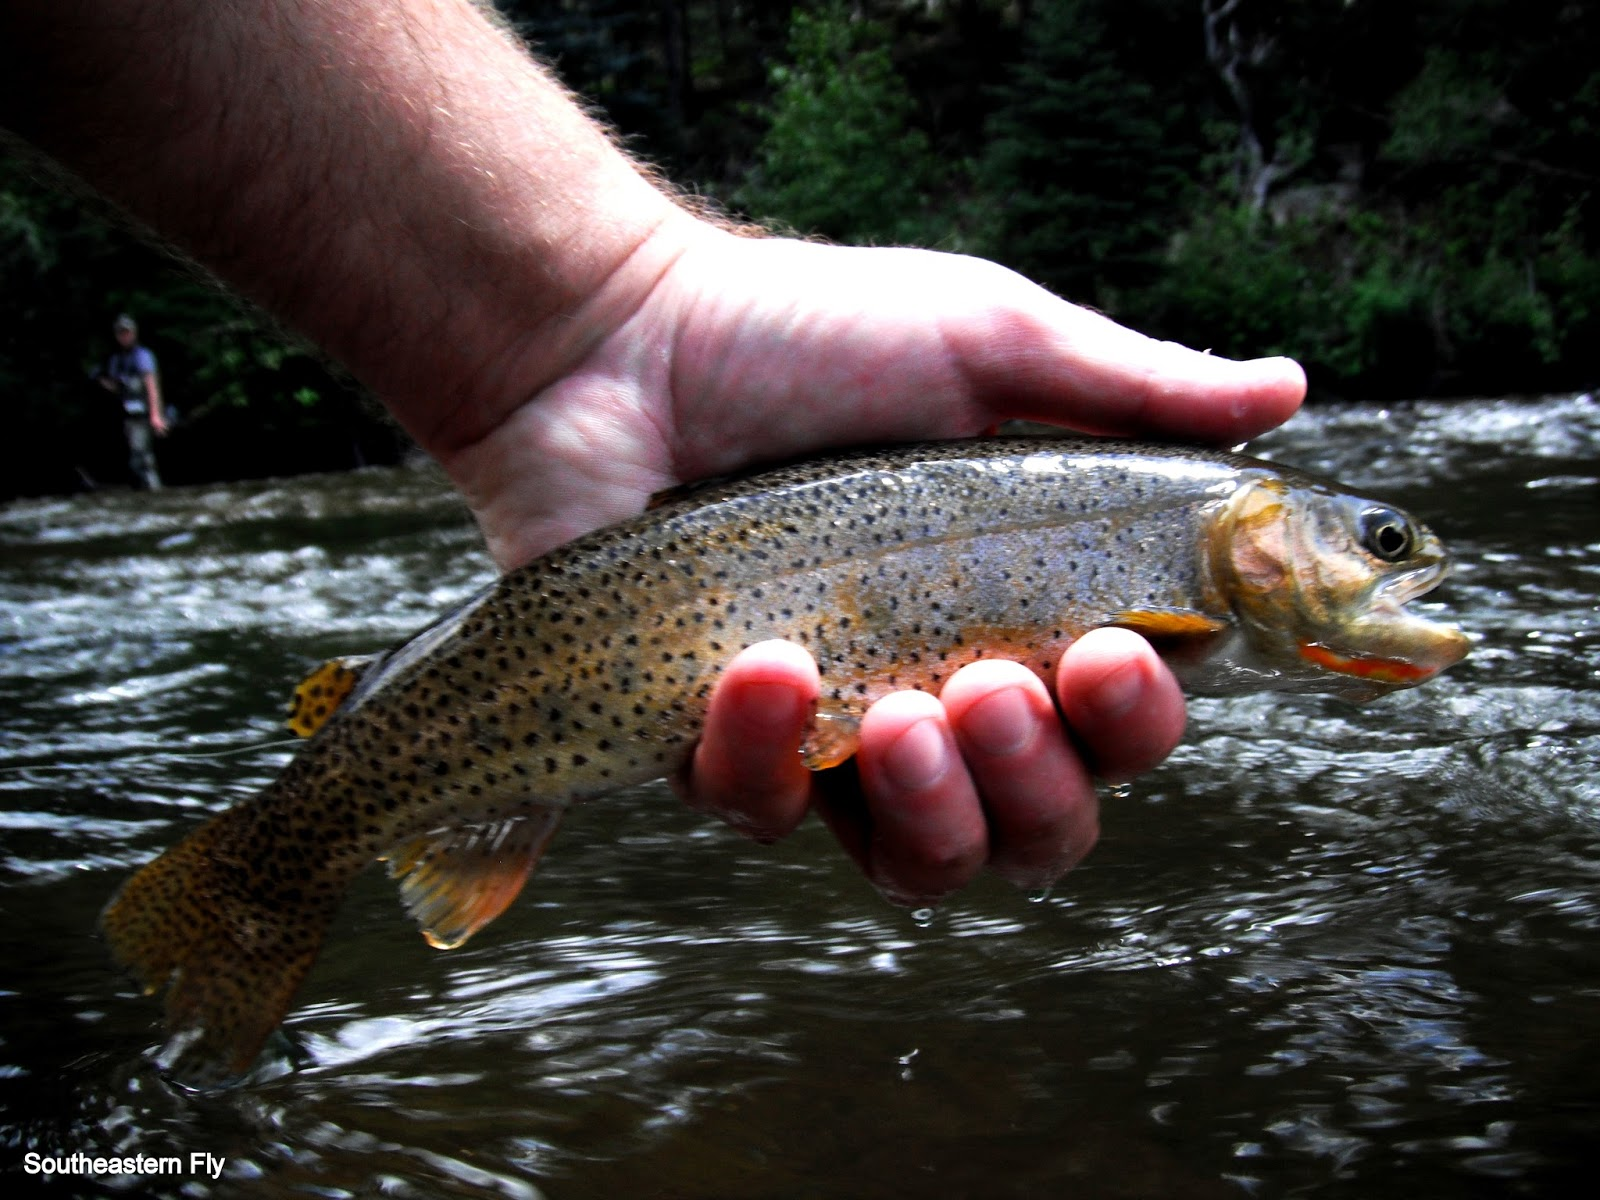 Southeastern fly fly fishing the taylor river for Taylor fly fishing